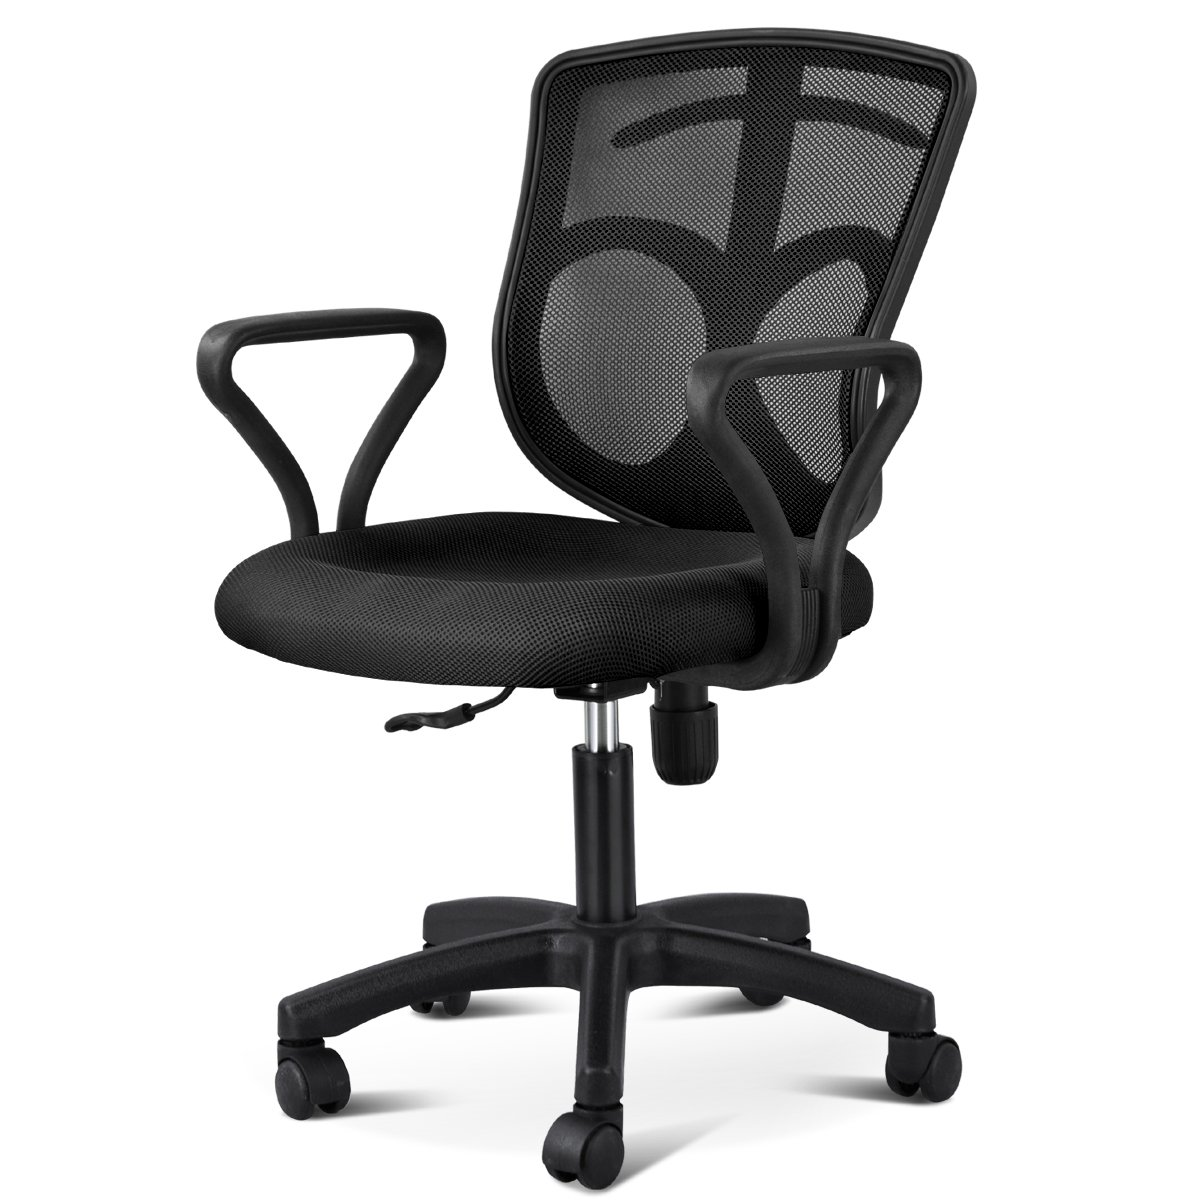 Best office chair 2016 - Gotobuy Black Office Desk Chair With Arms Fabric Mesh Seat Backrest